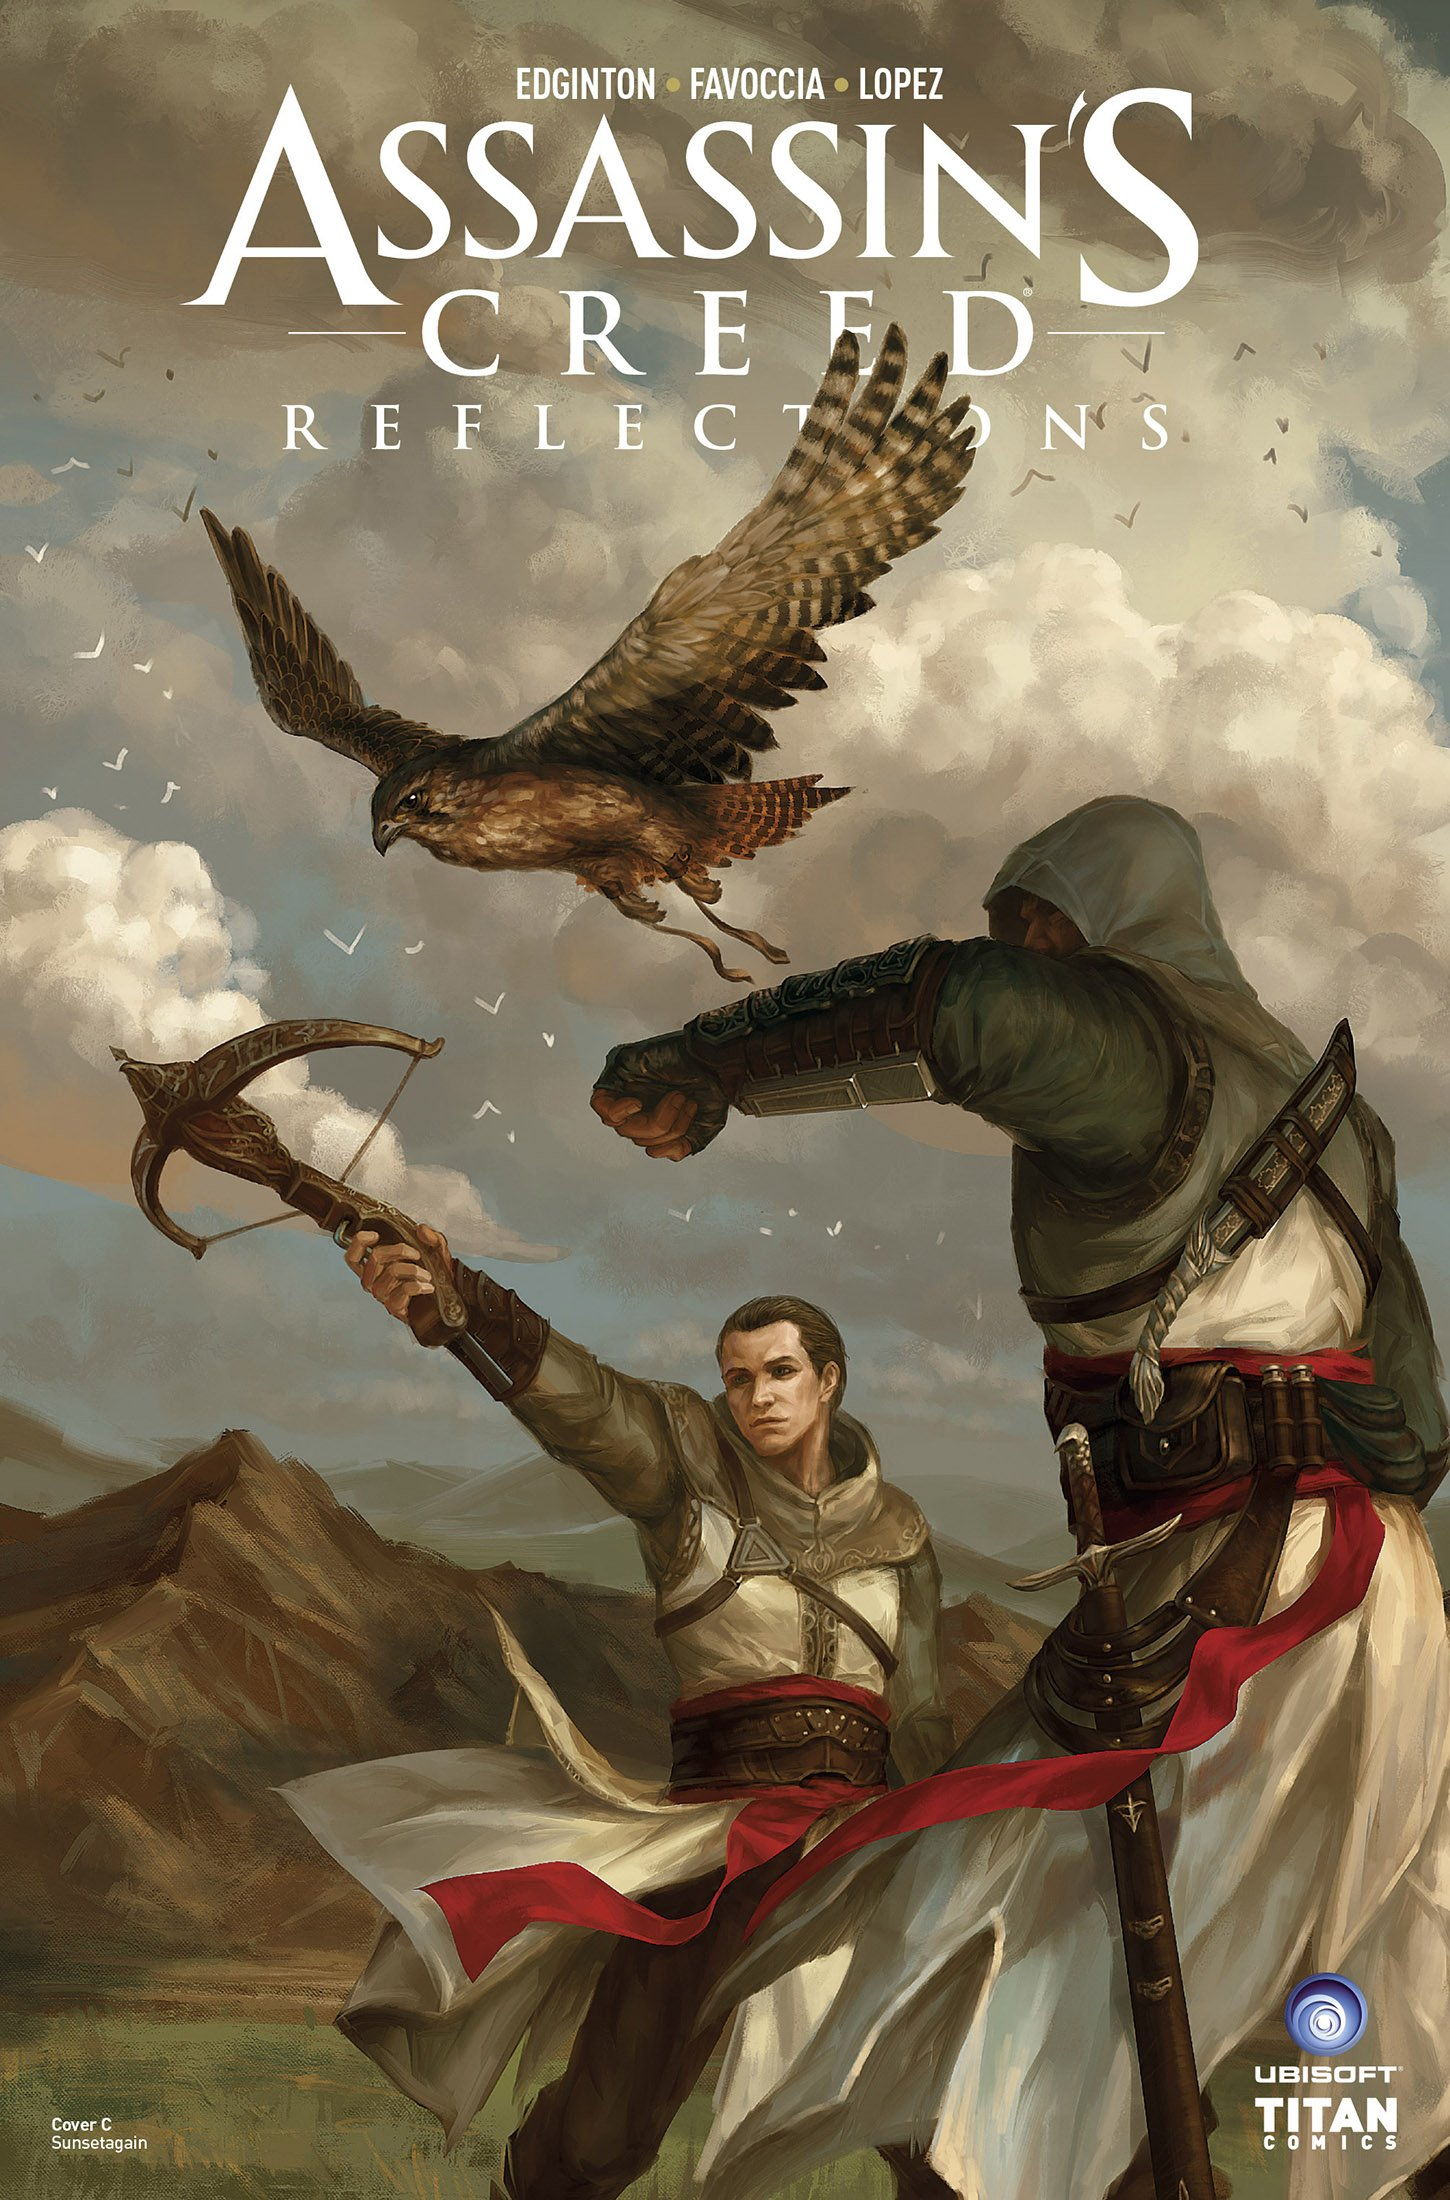 Assassin's Creed - Reflections 02 (May 2017) (cover c)